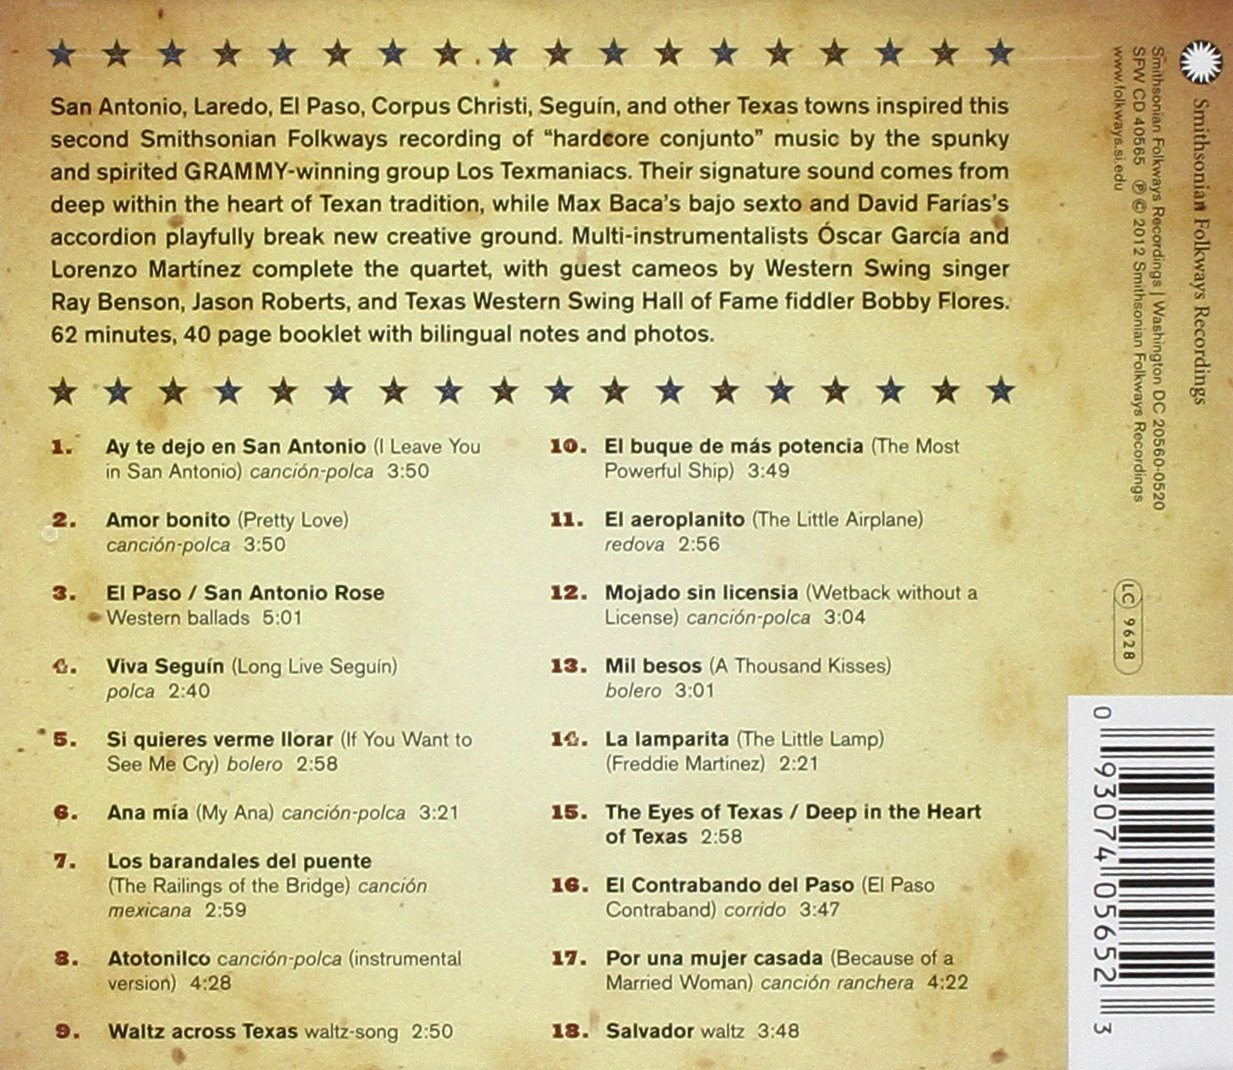 Texas Towns & Tex-Mex Sounds by Smithsonian Folkways